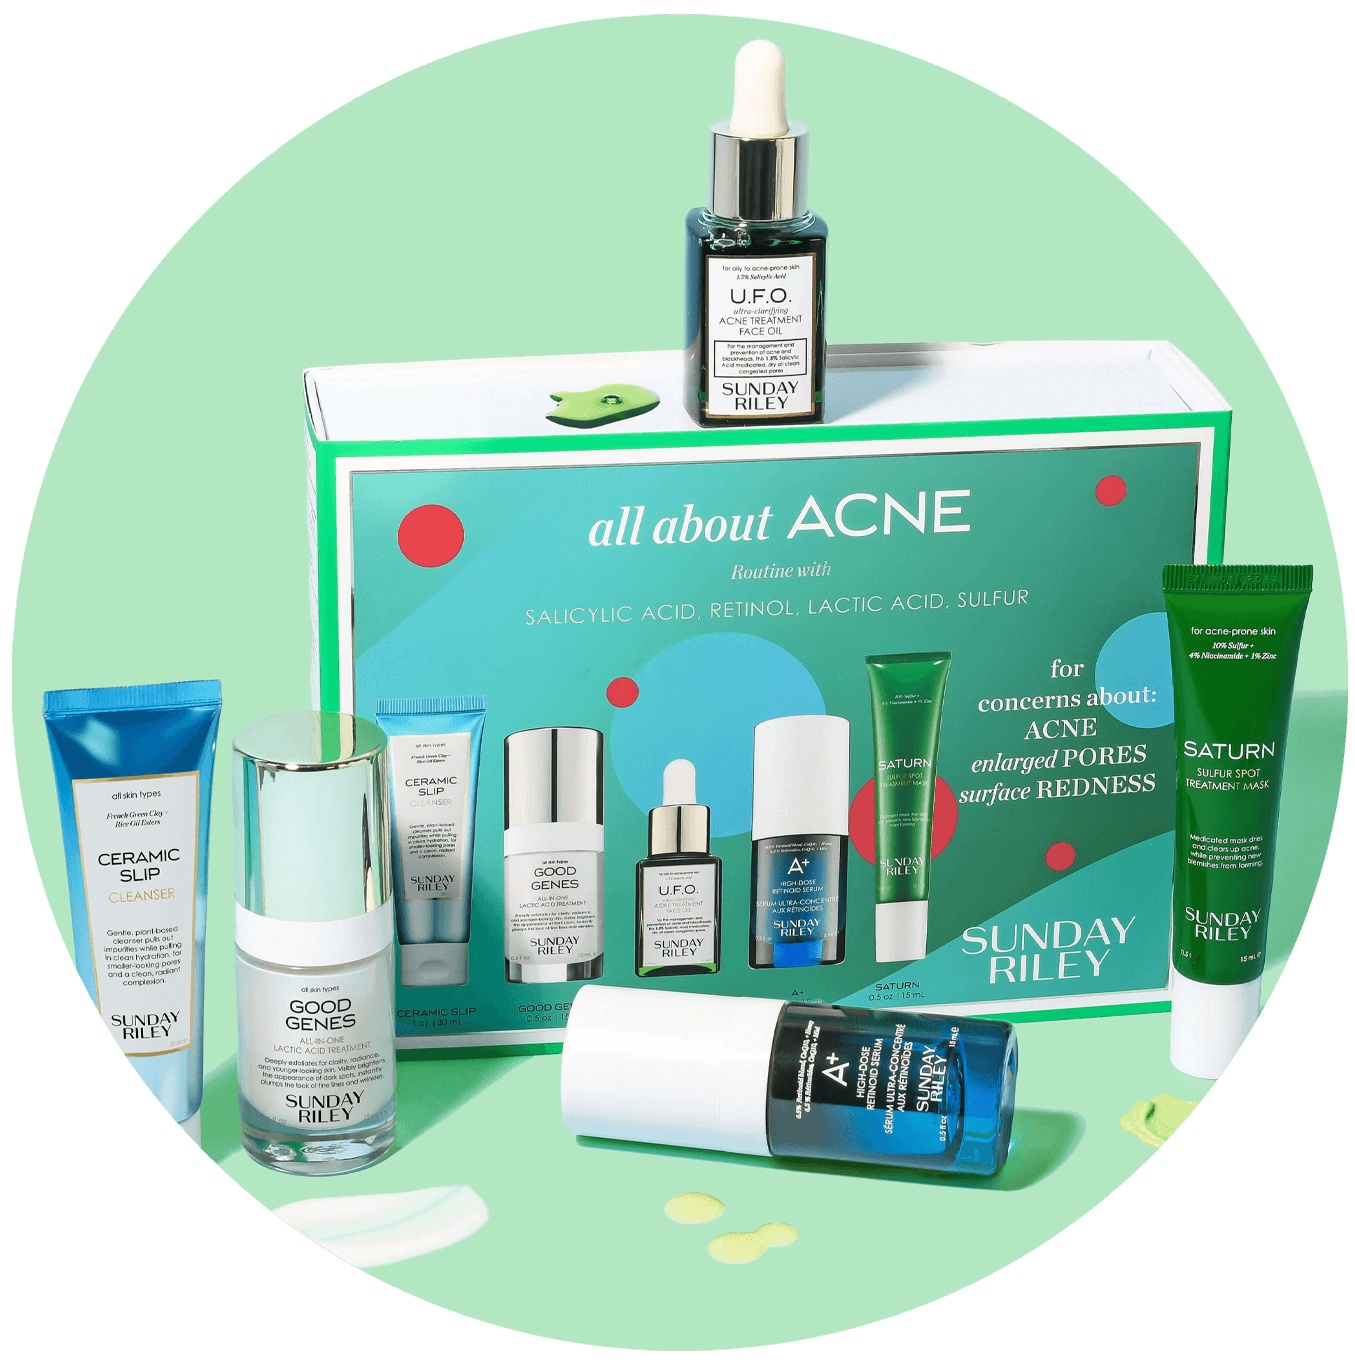 A complete acne-fighting routine toreduce the look of blemishes and future breakouts.